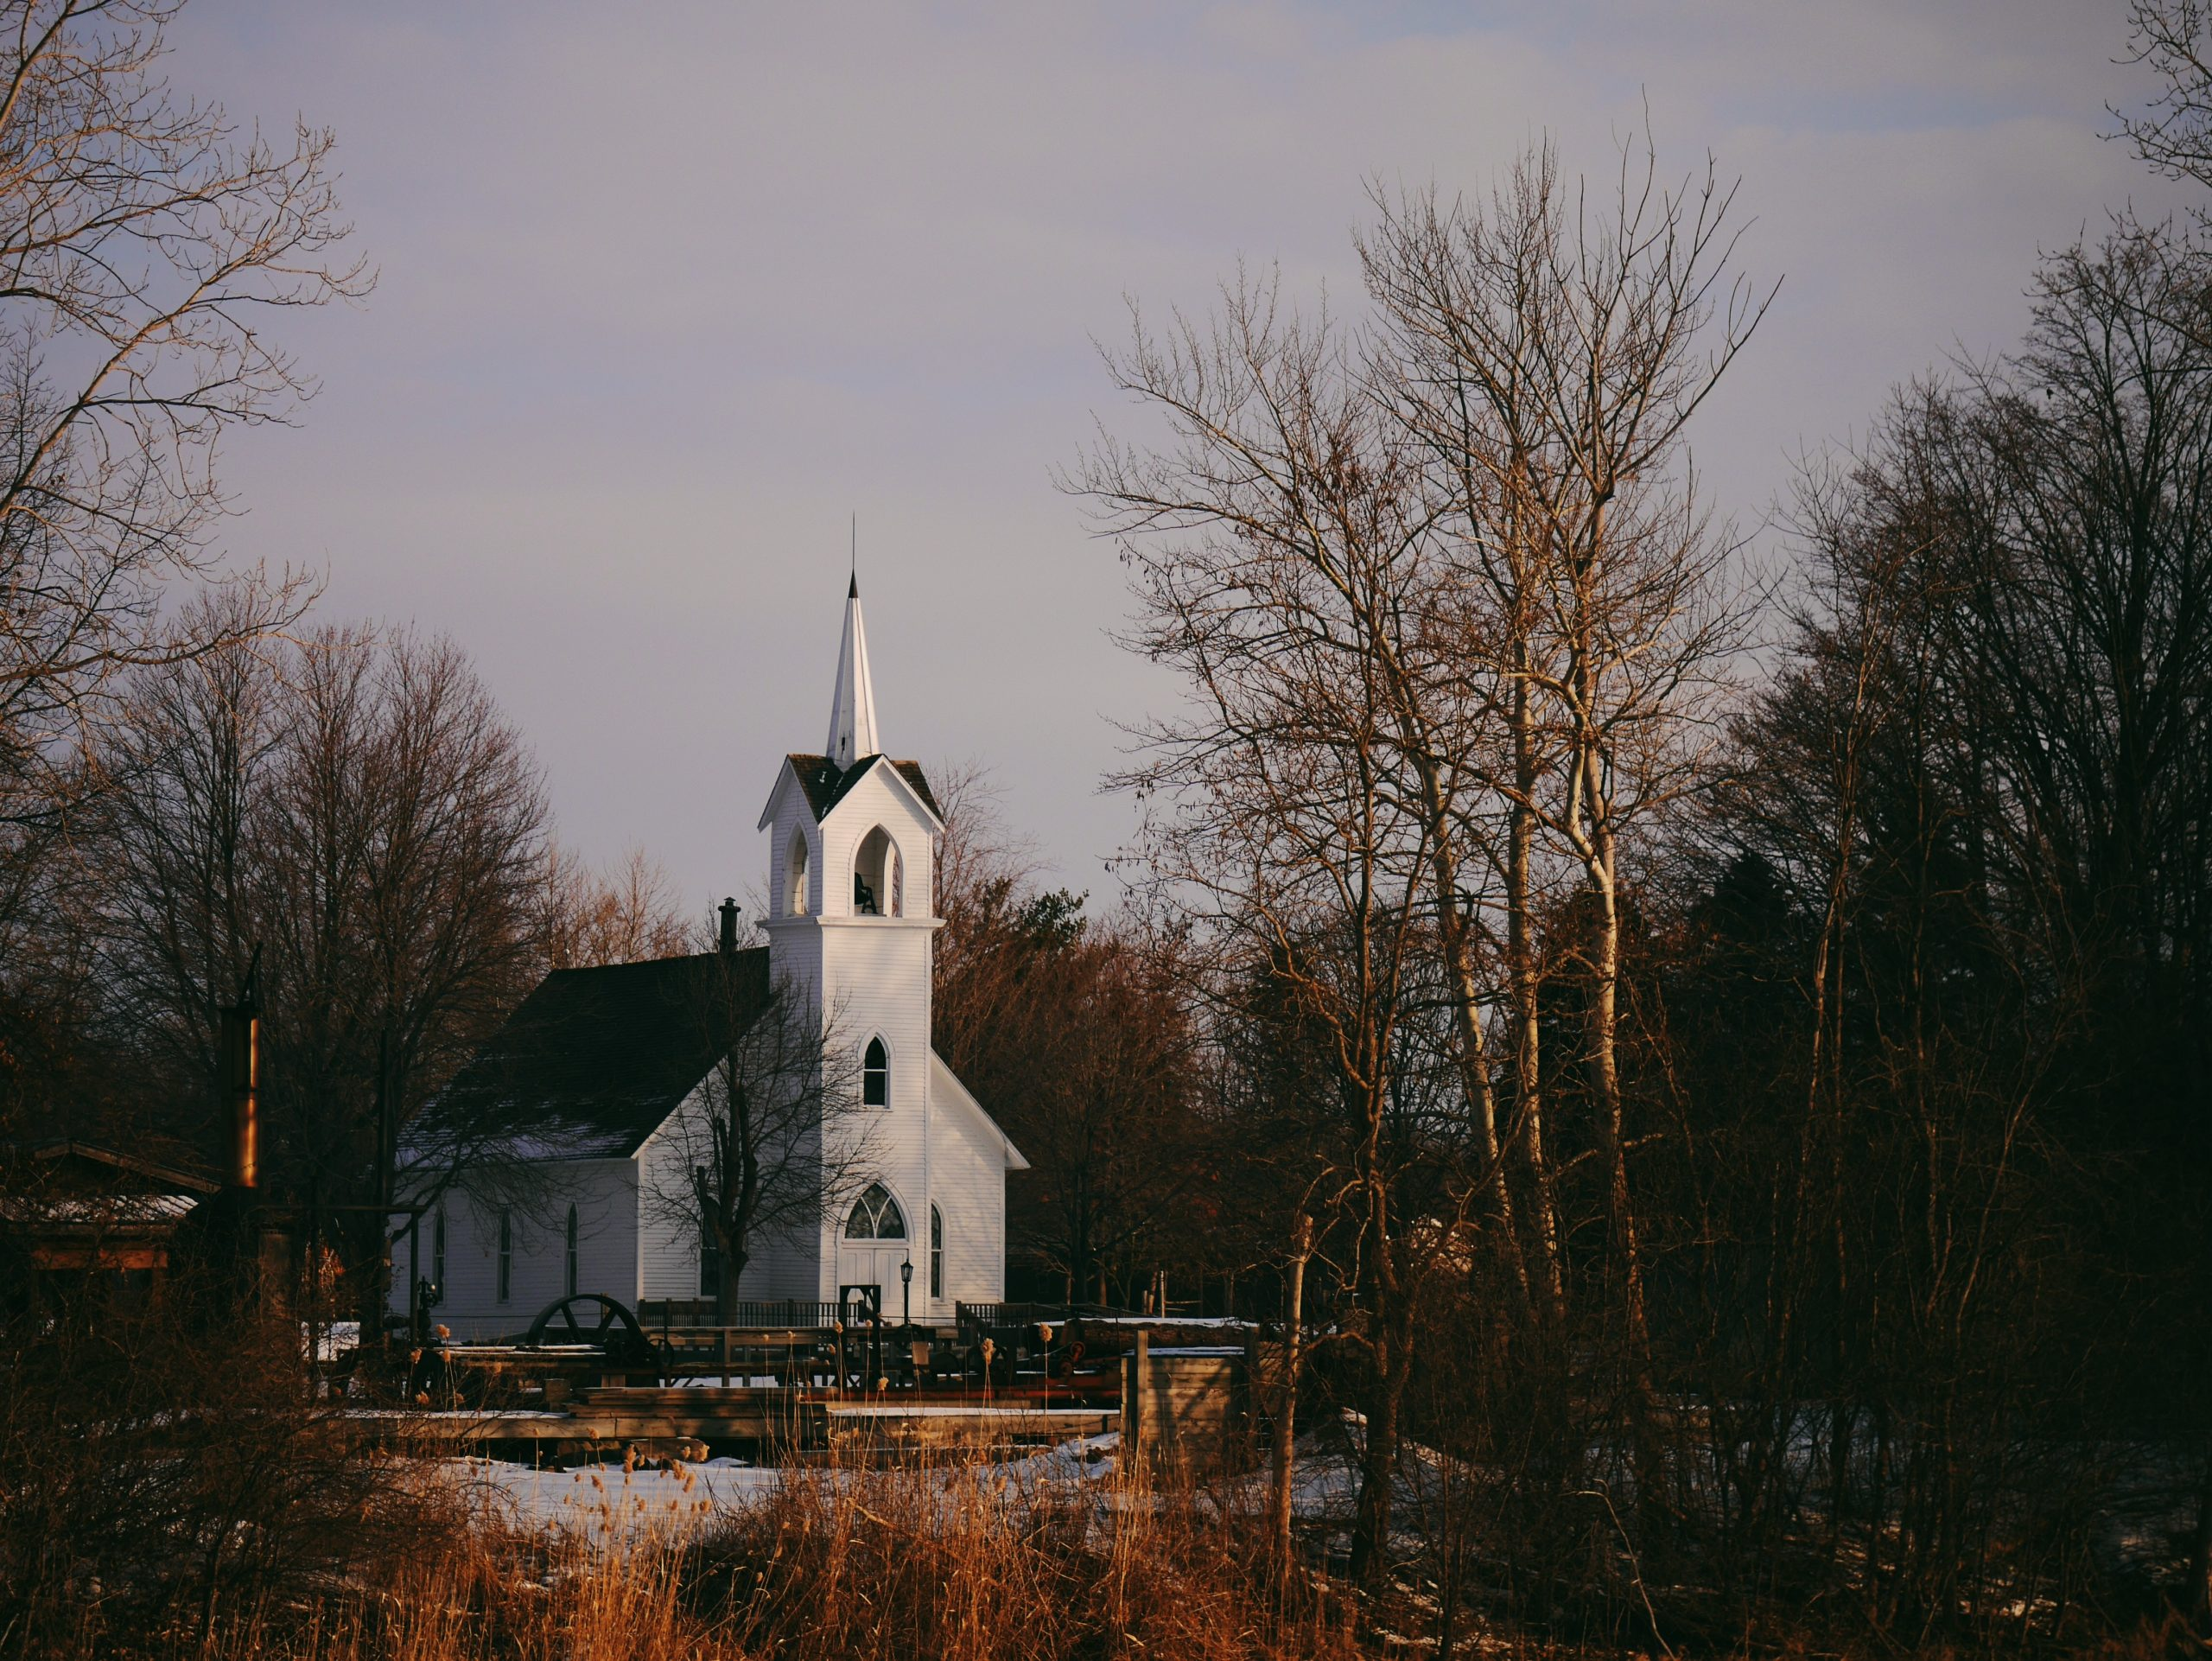 Four Reasons it's Great to Sow Into the Local Church